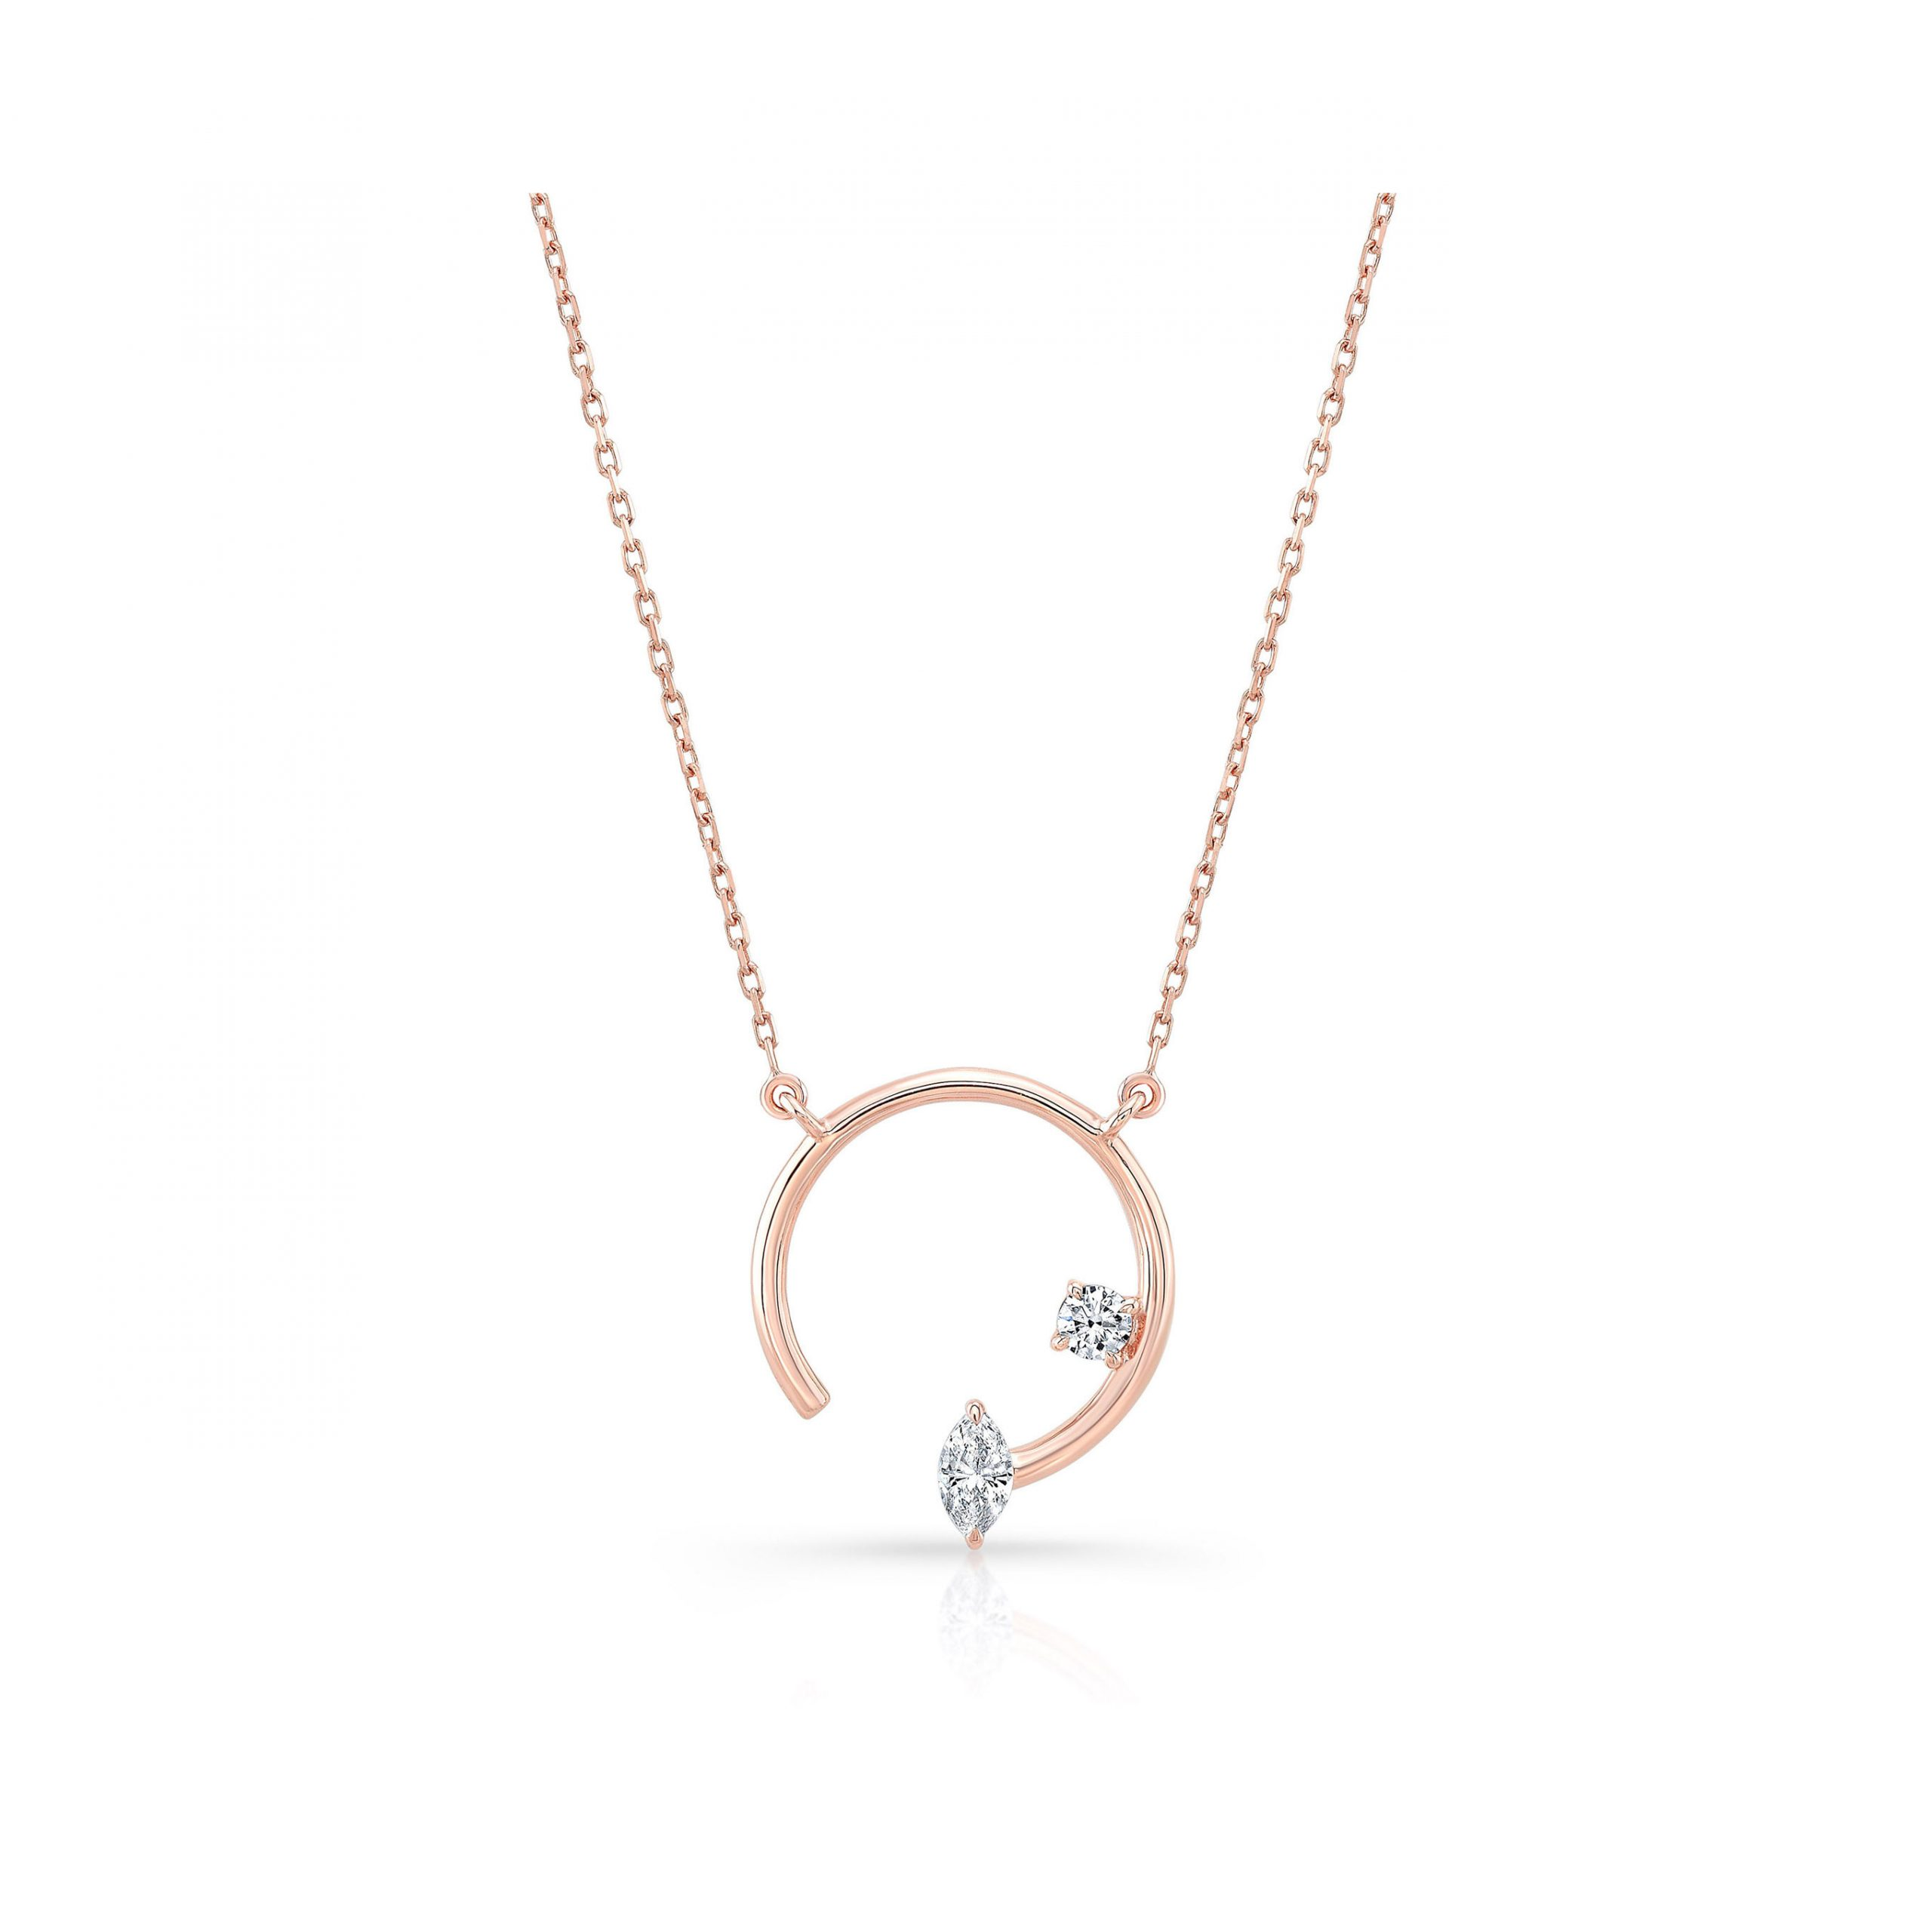 Celeste Mixed Diamond Asymmetric Necklace, marquise & round brilliant in 18k Rose Gold Front View by Oui by Jean Dousset